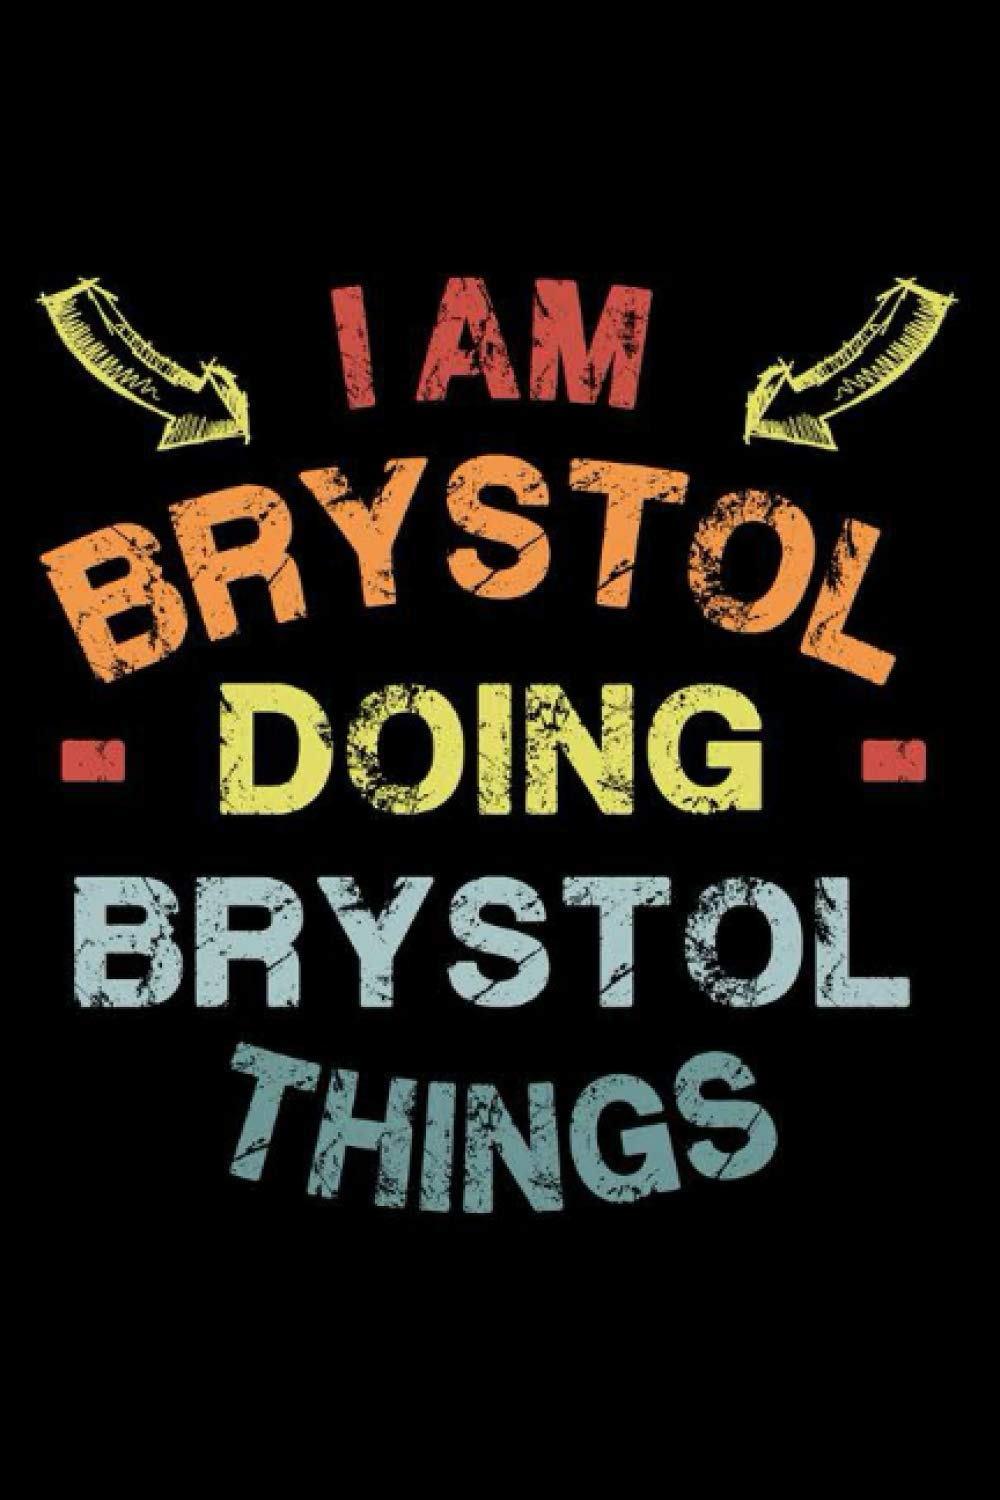 I Am Brystol Doing Brystol Things: Fun & Popular Trendy Personalized Name Notebook | Meme funny gift for men, women and kids | Personal first name make a unique present for Birthday or Christmas